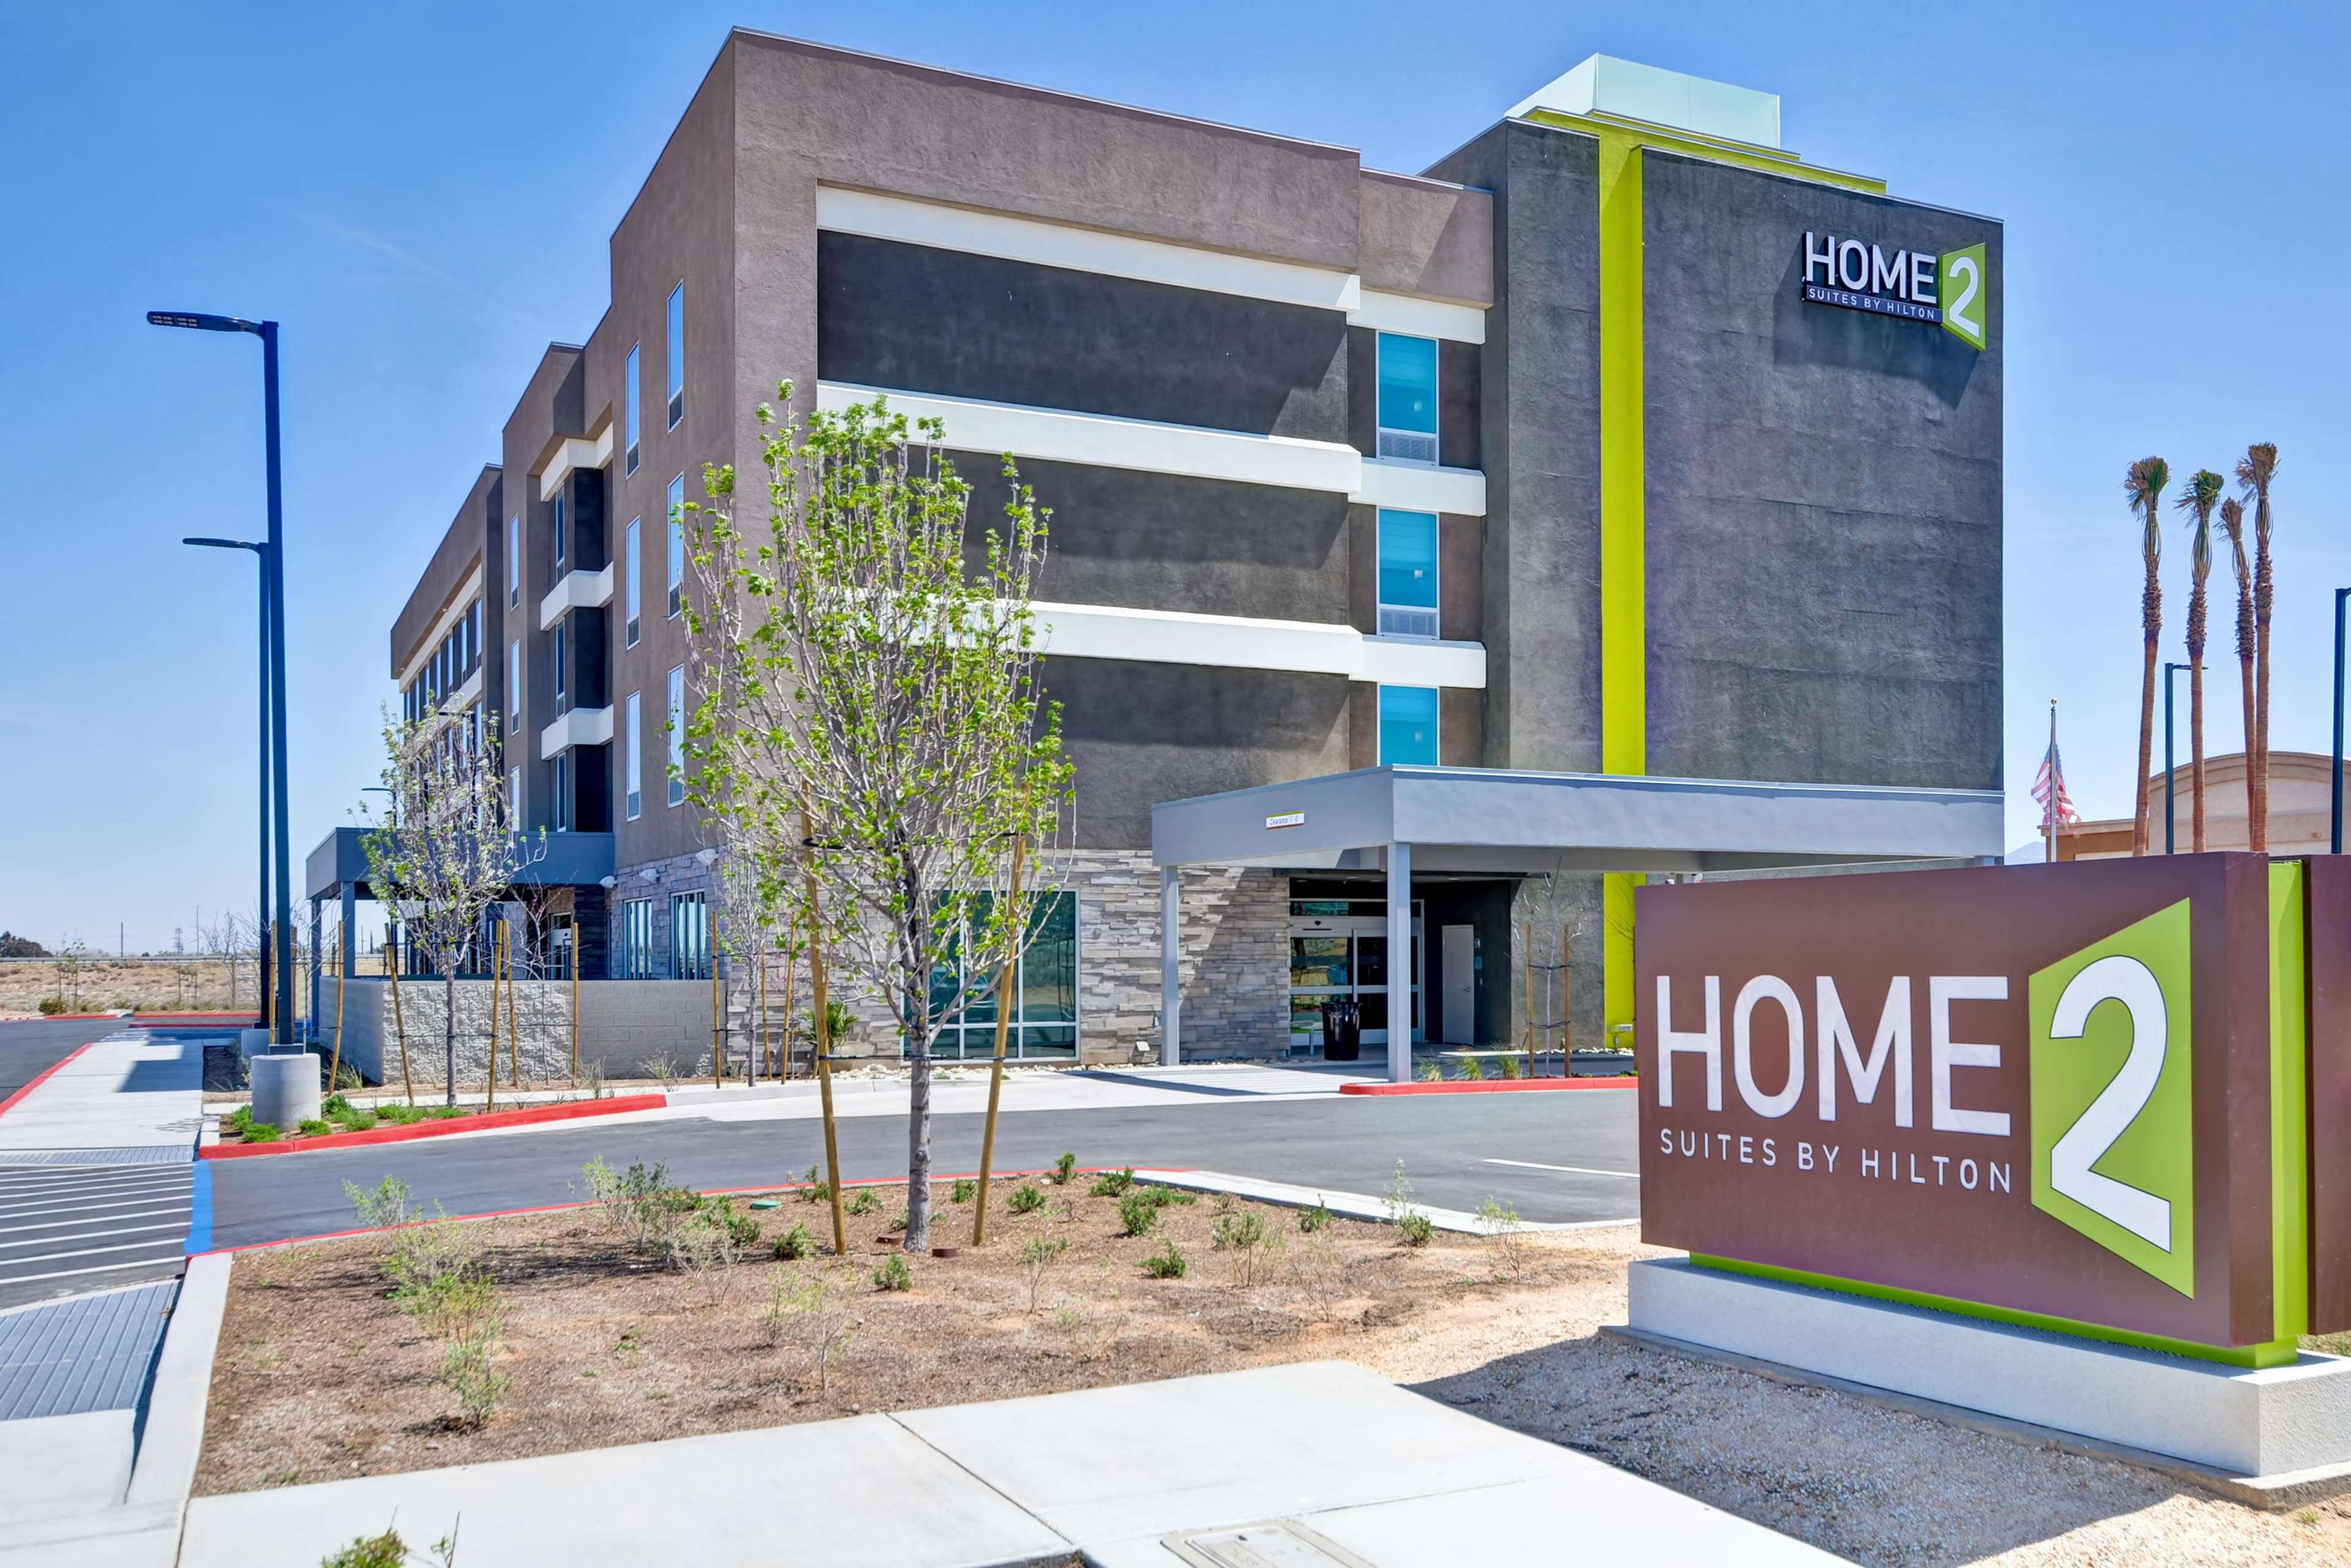 Home2 Suites by Hilton Palmdale image 0